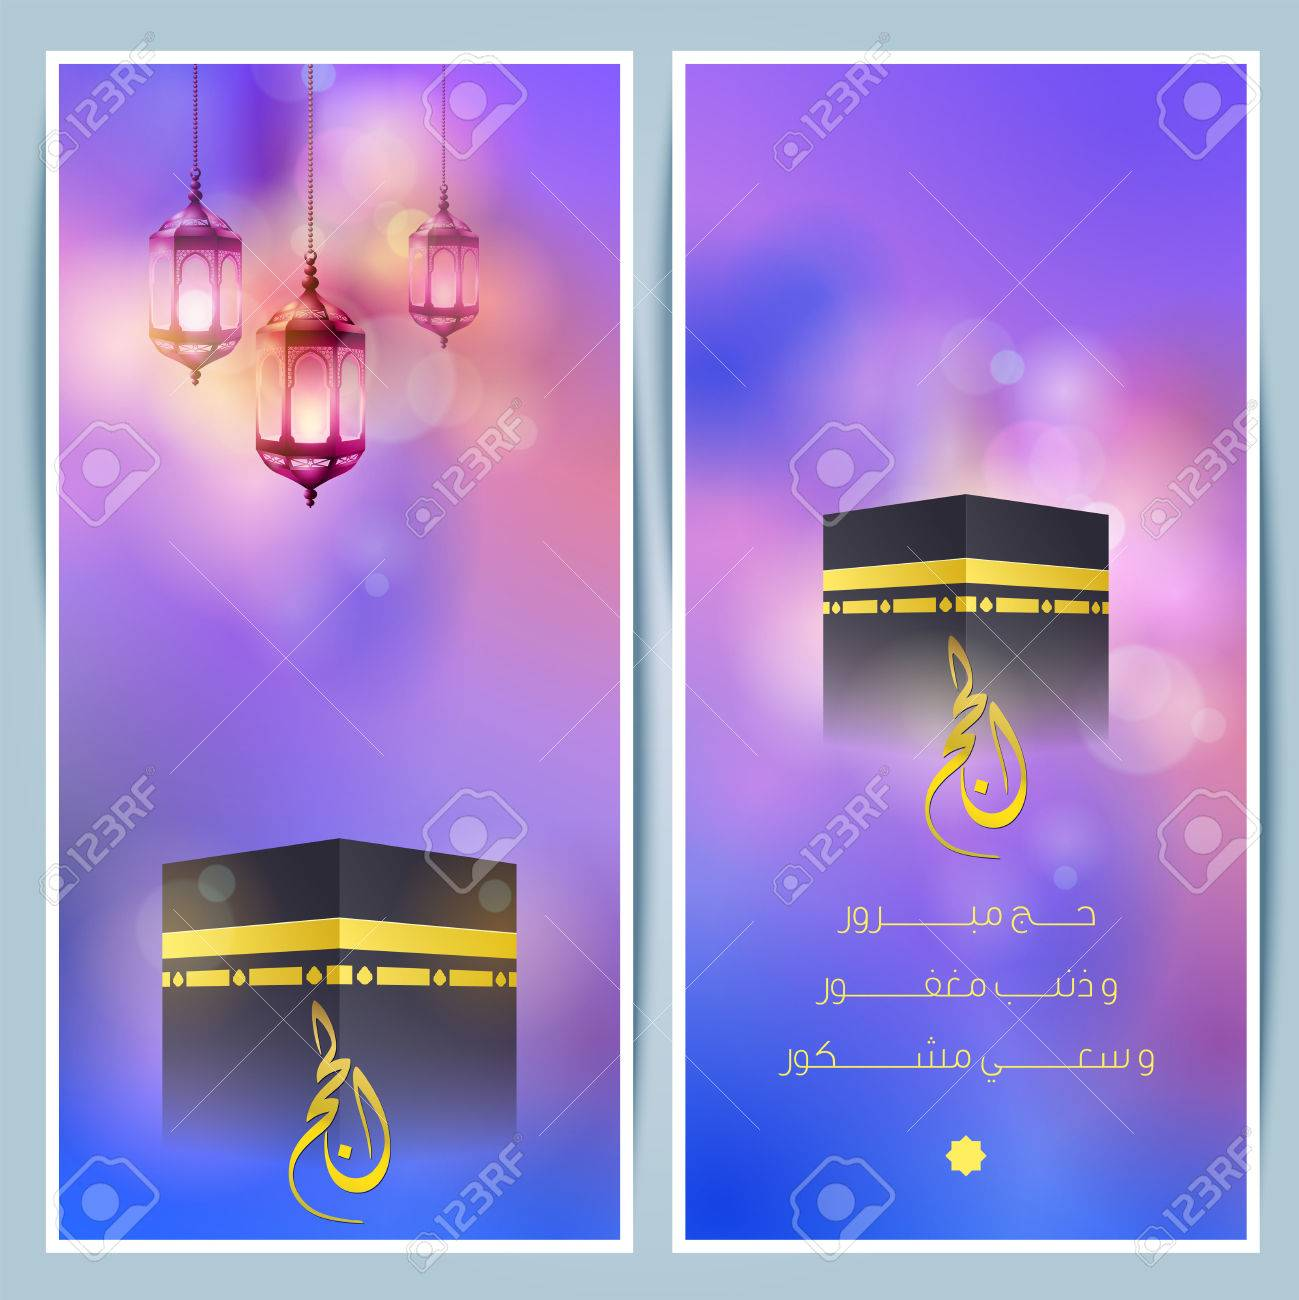 Islamic hajj greeting card template with arabic lantern and kaaba islamic hajj greeting card template with arabic lantern and kaaba stock vector 56668049 kristyandbryce Image collections